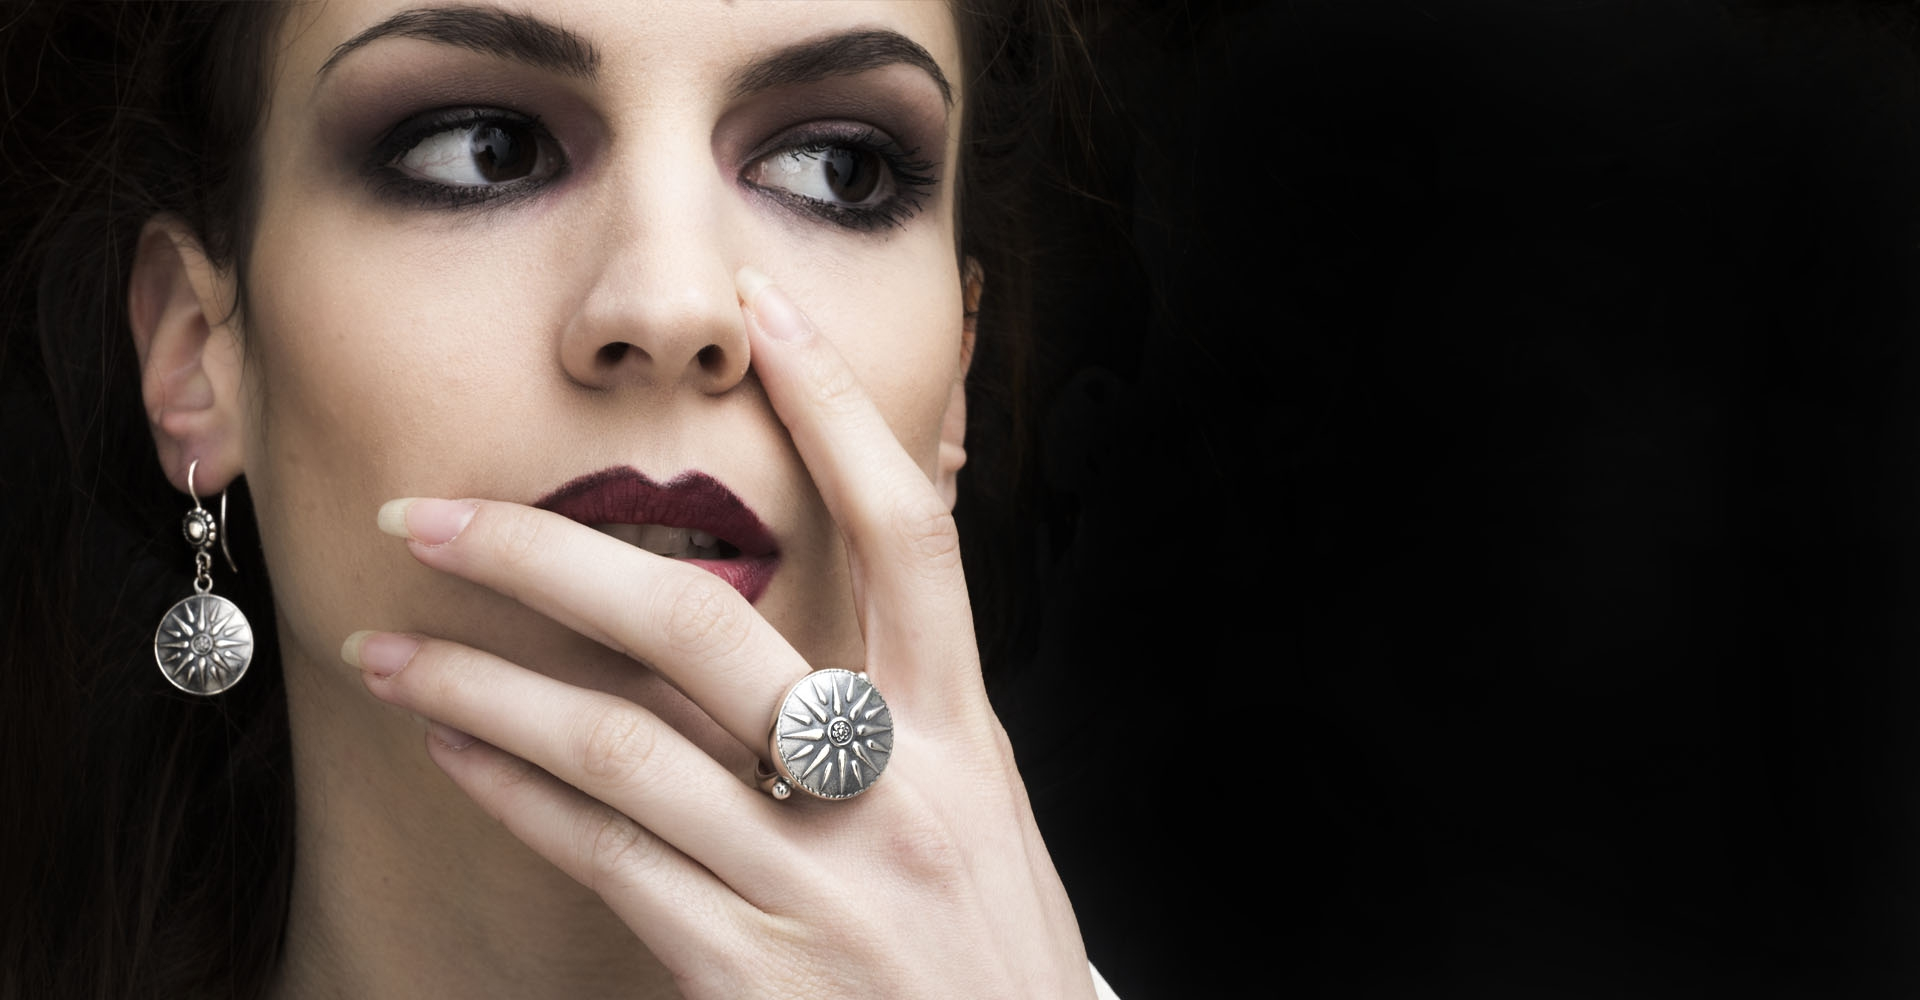 Greek Silver Rings inspired from ancient Greece and Grecian jewelry